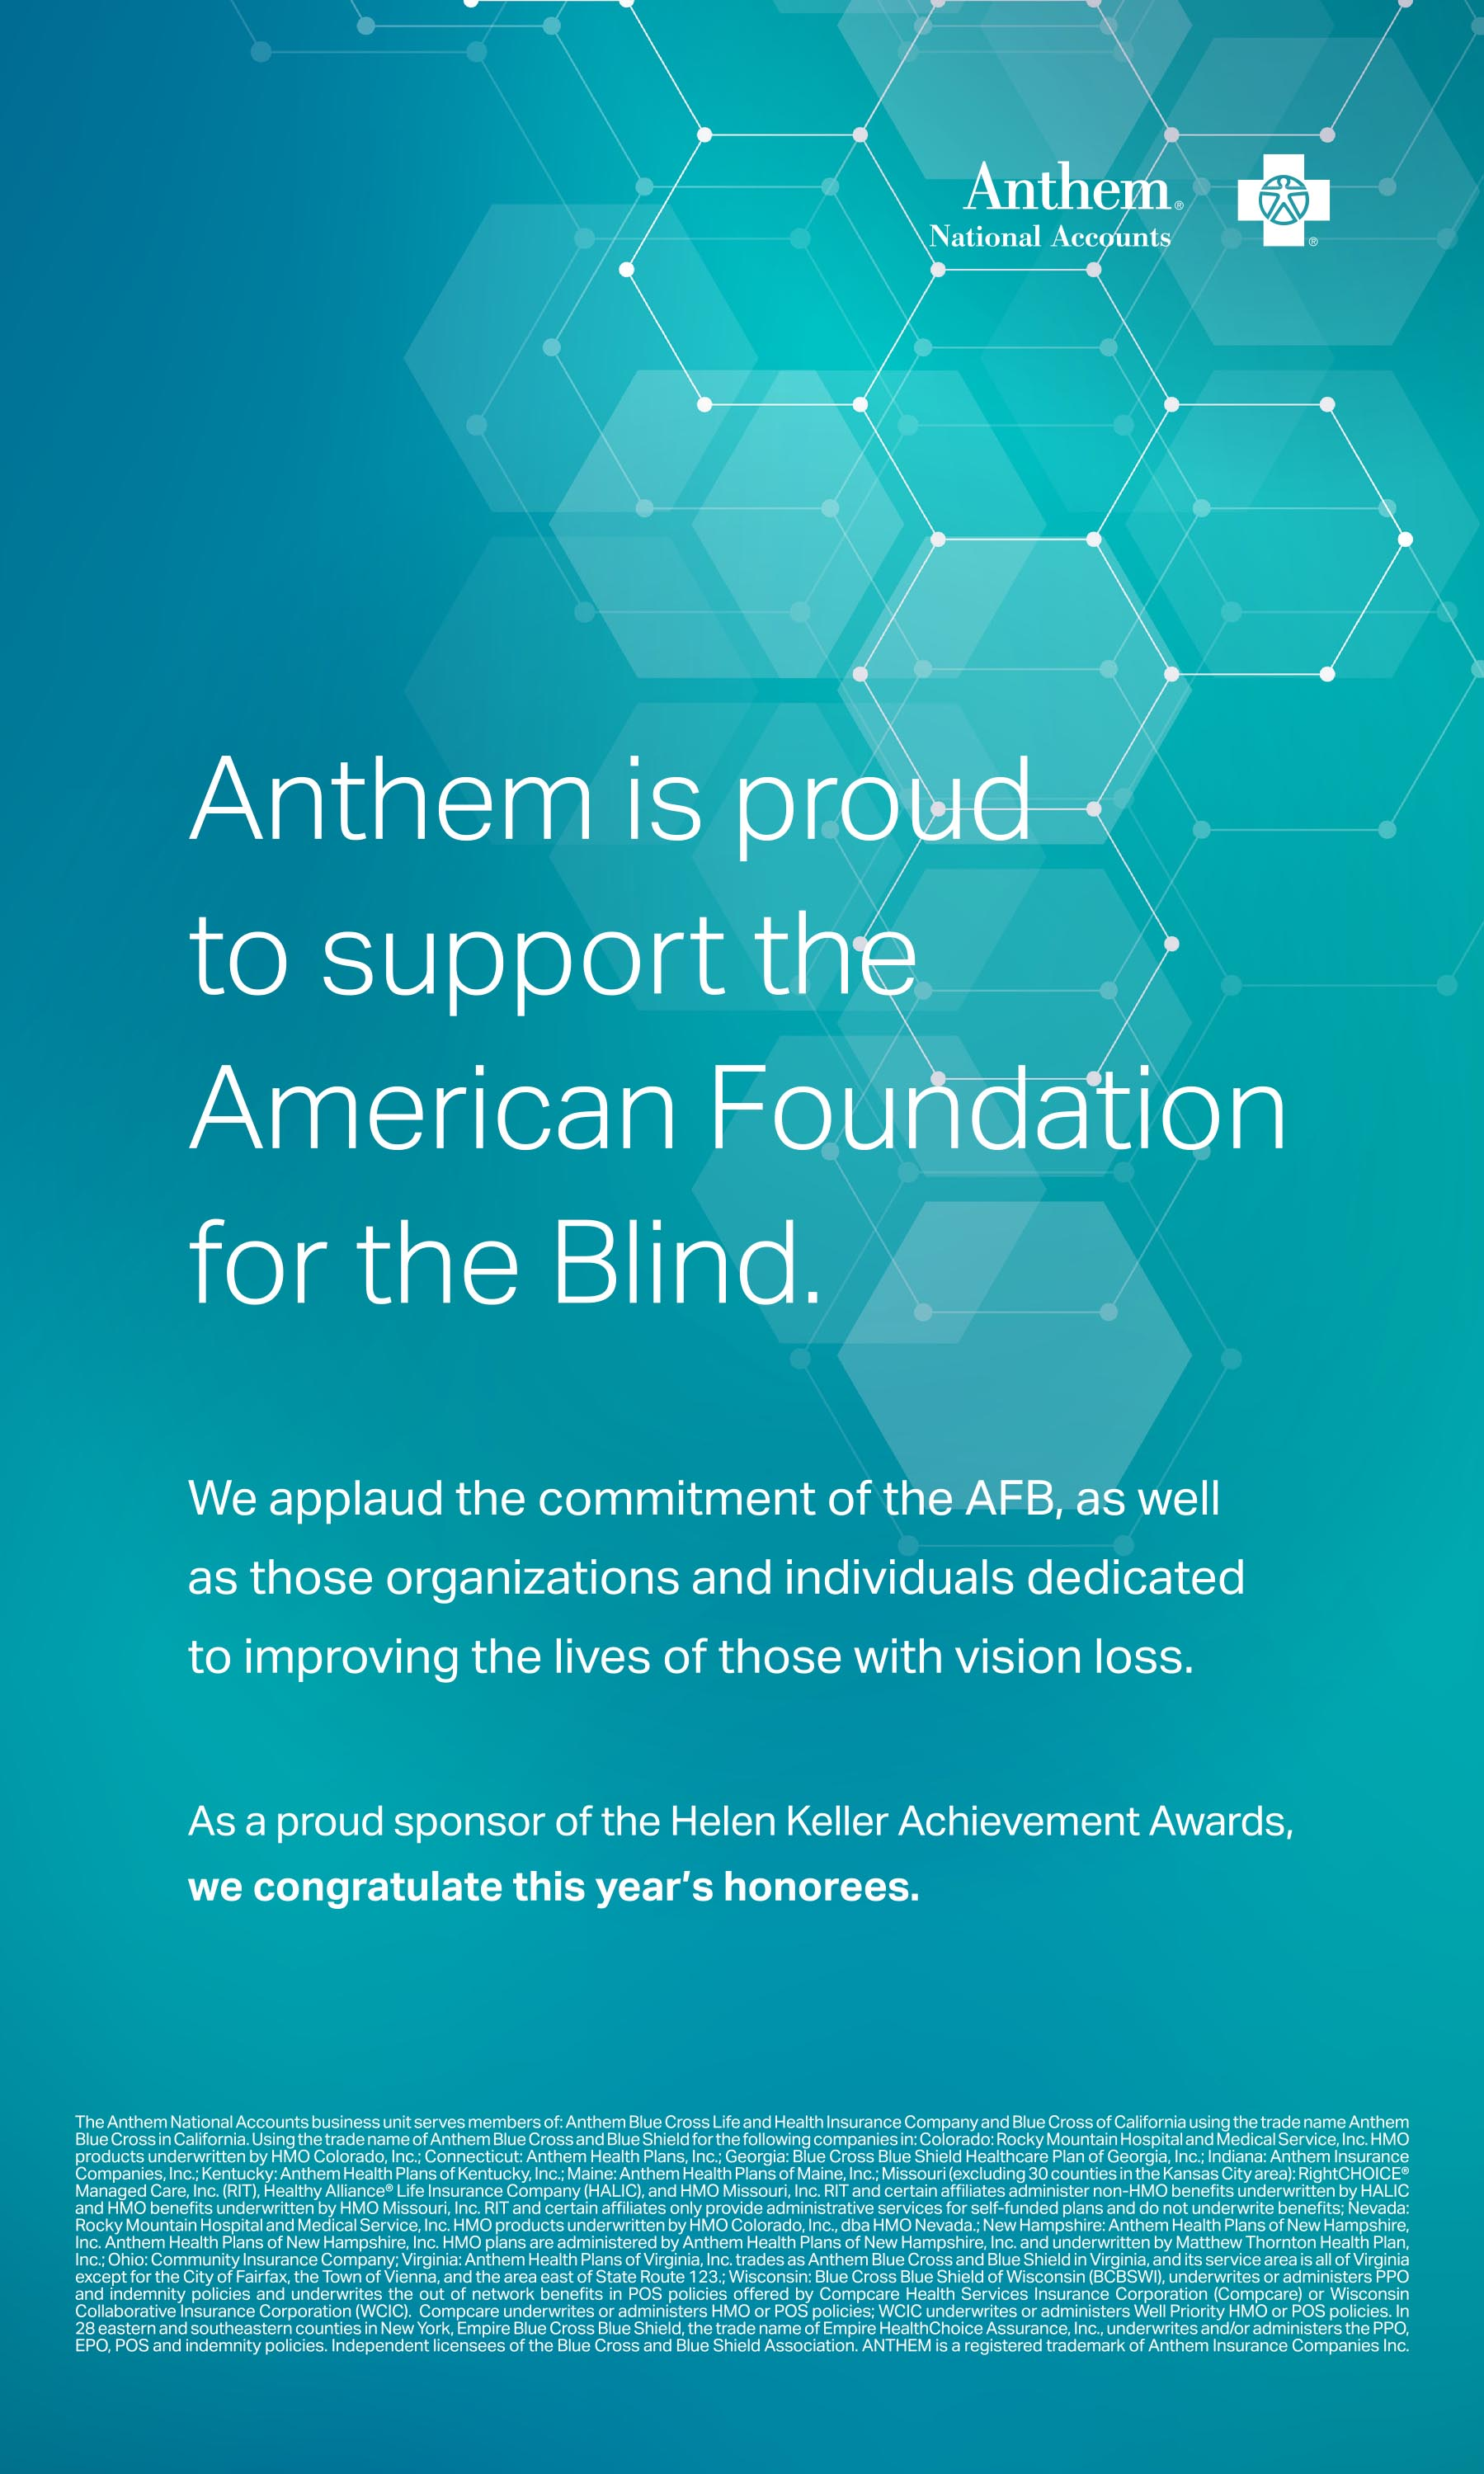 Anthem HKAA 2020 Ad | American Foundation for the Blind